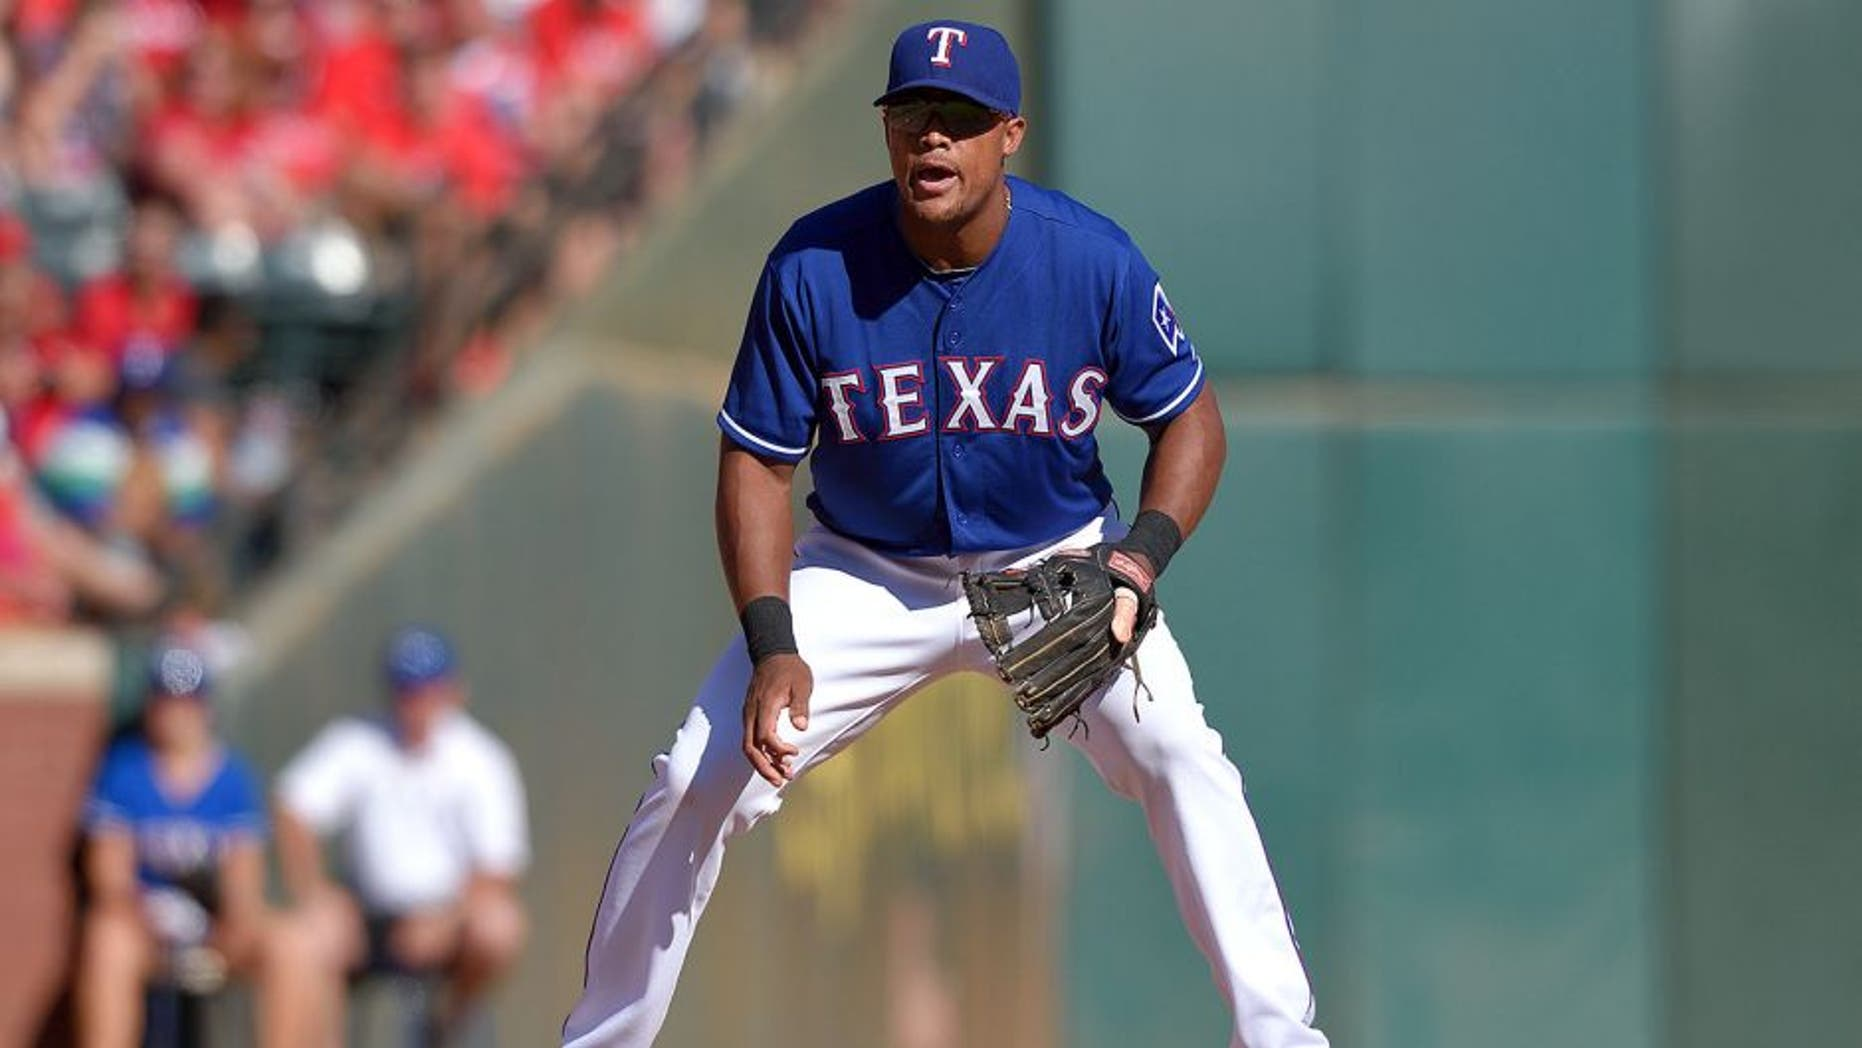 ARLINGTON, TX - OCTOBER 4: Adrian Beltre #29 of the Texas Rangers during the seventh inning of the game against the Los Angeles Angels of Anaheim at Globe Life Park in Arlington on October 4, 2015 in Arlington, California. (Photo by Matt Brown/Angels Baseball LP/Getty Images)